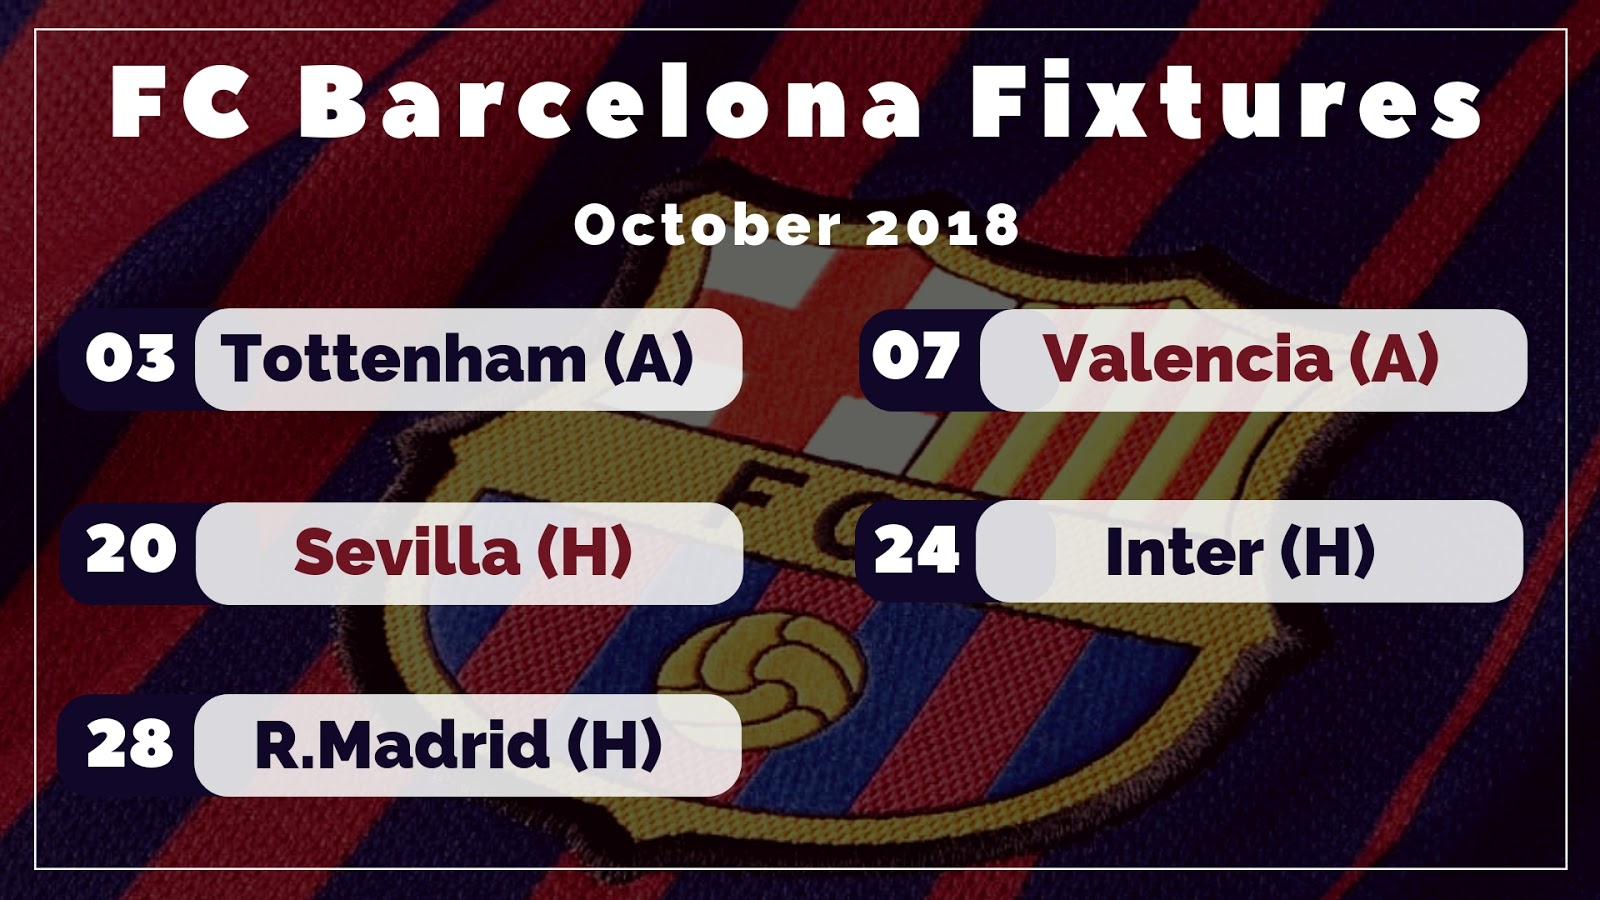 FC Barcelona Fixtures : By Barca's September Form, October Looks Really Scary #barca #fcbarcelona #barcamatches #fcbarcelonafixtures